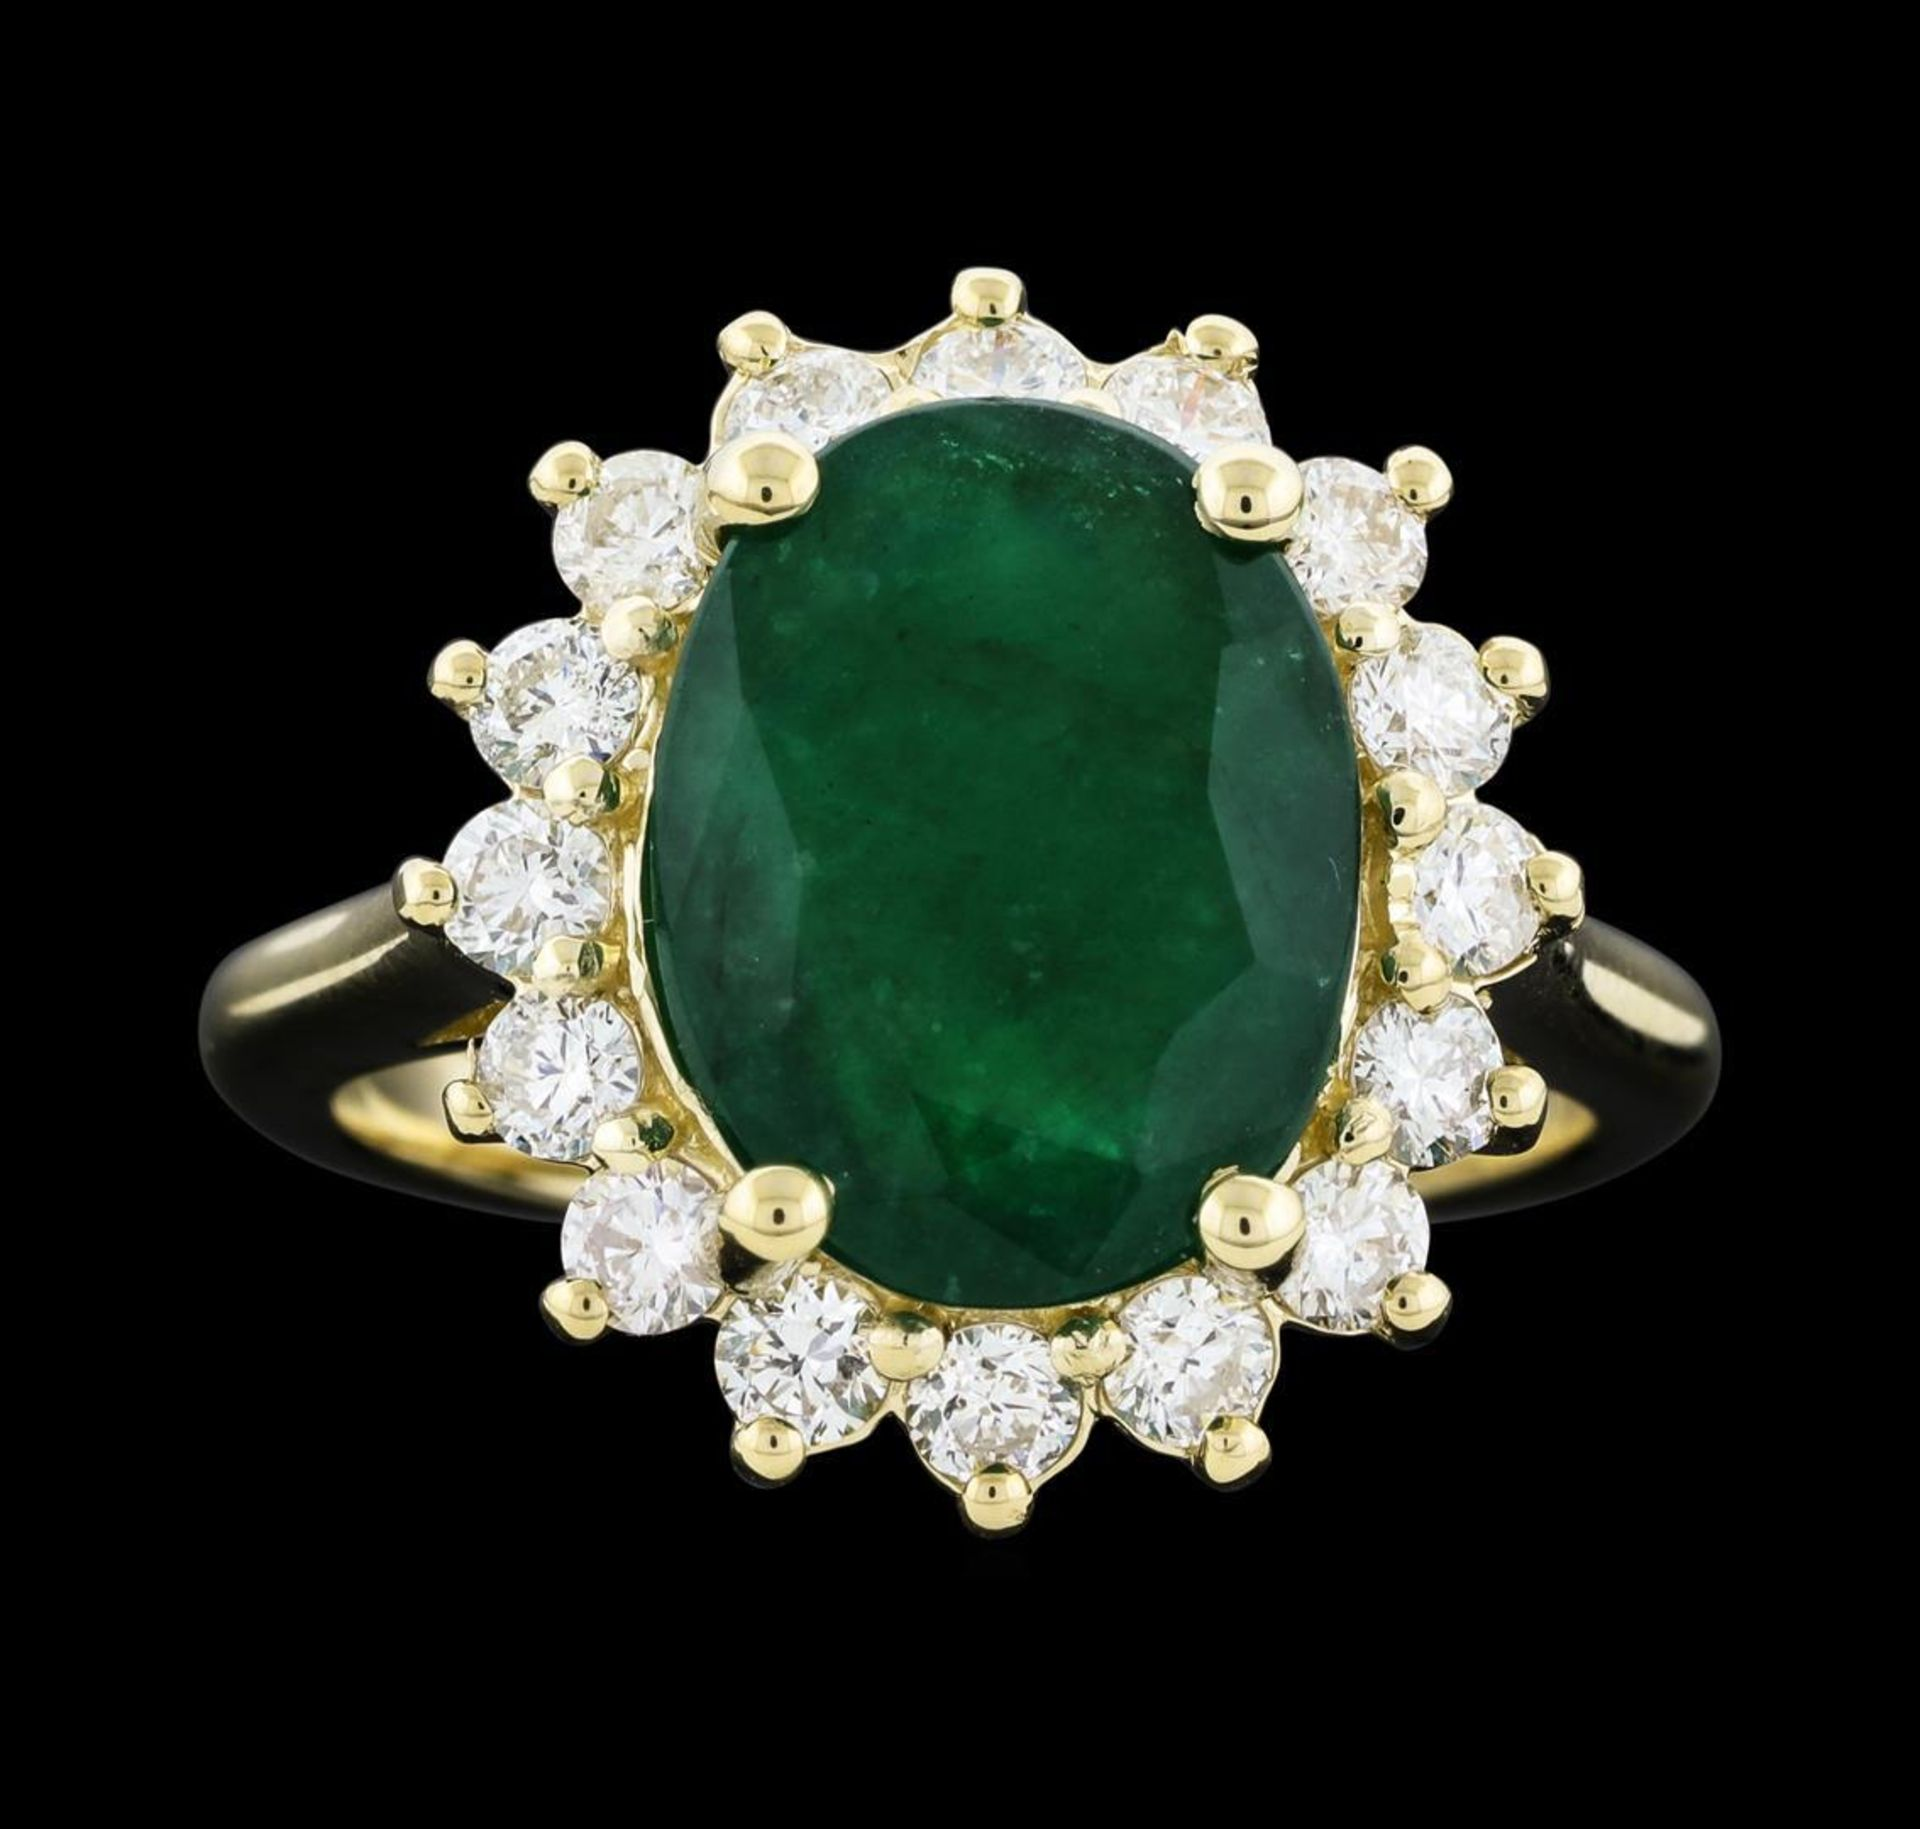 4.52 ctw Emerald and Diamond Ring - 14KT Yellow Gold - Image 2 of 5